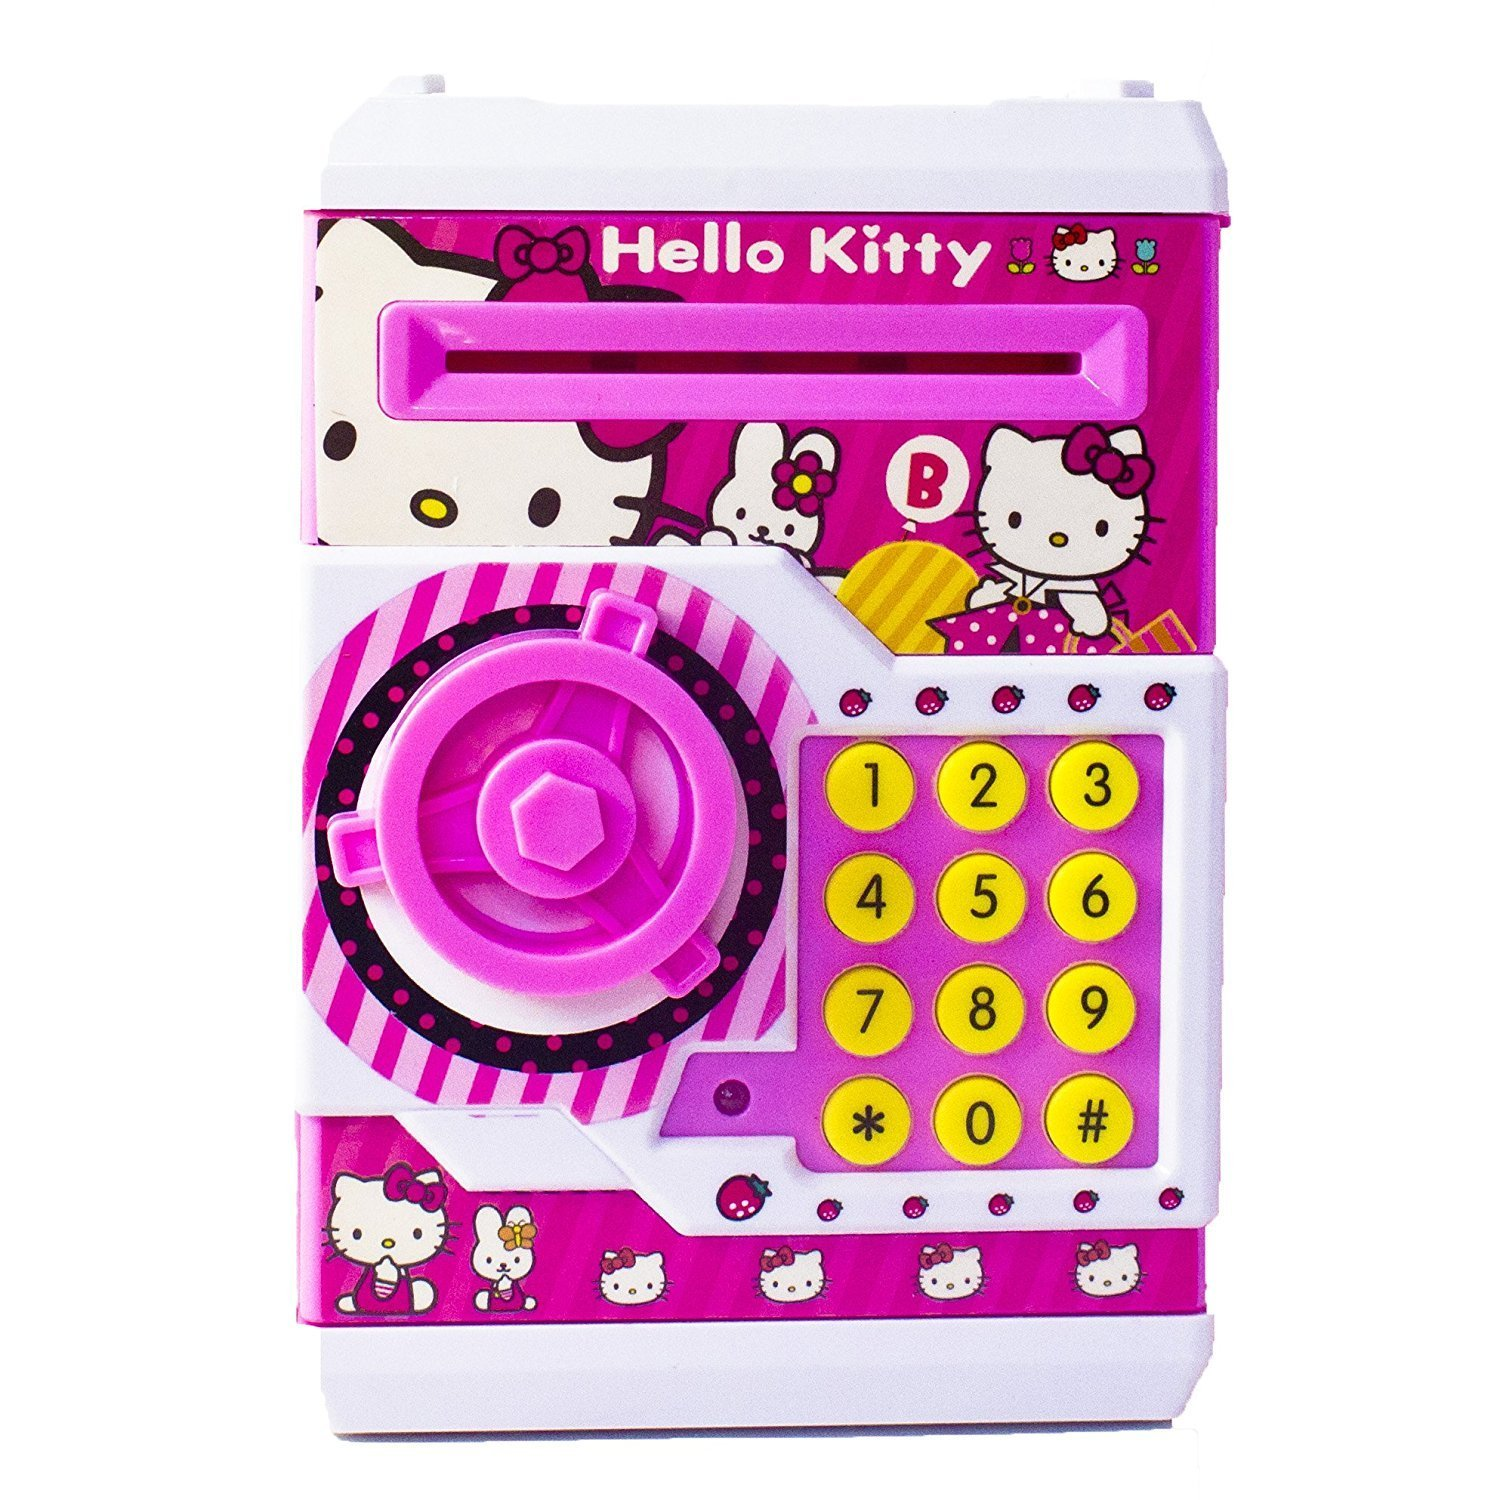 84d772ee1 Hello Kitty Emob Mini ATM With Electronic Lock & Secret Code (Pretty ...